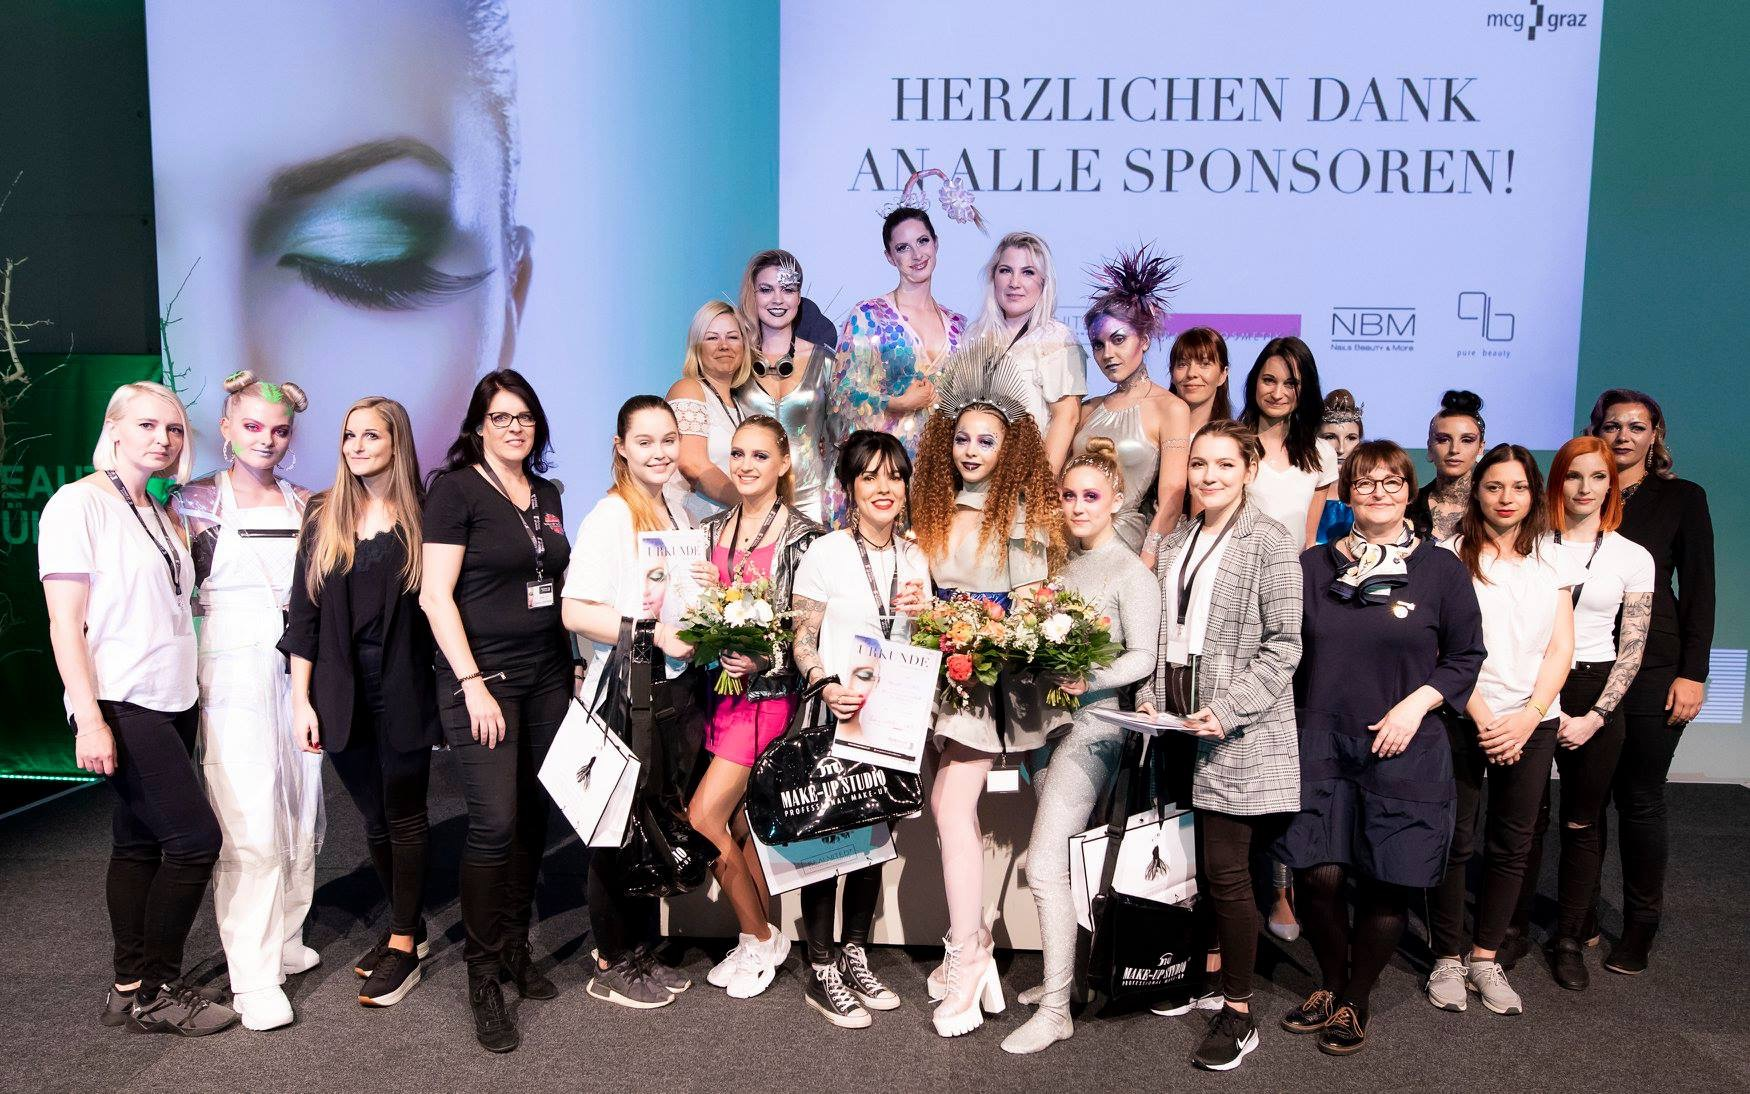 Foto: Messe Graz, Make-up Meisterschaften 2019, Trends of Beauty